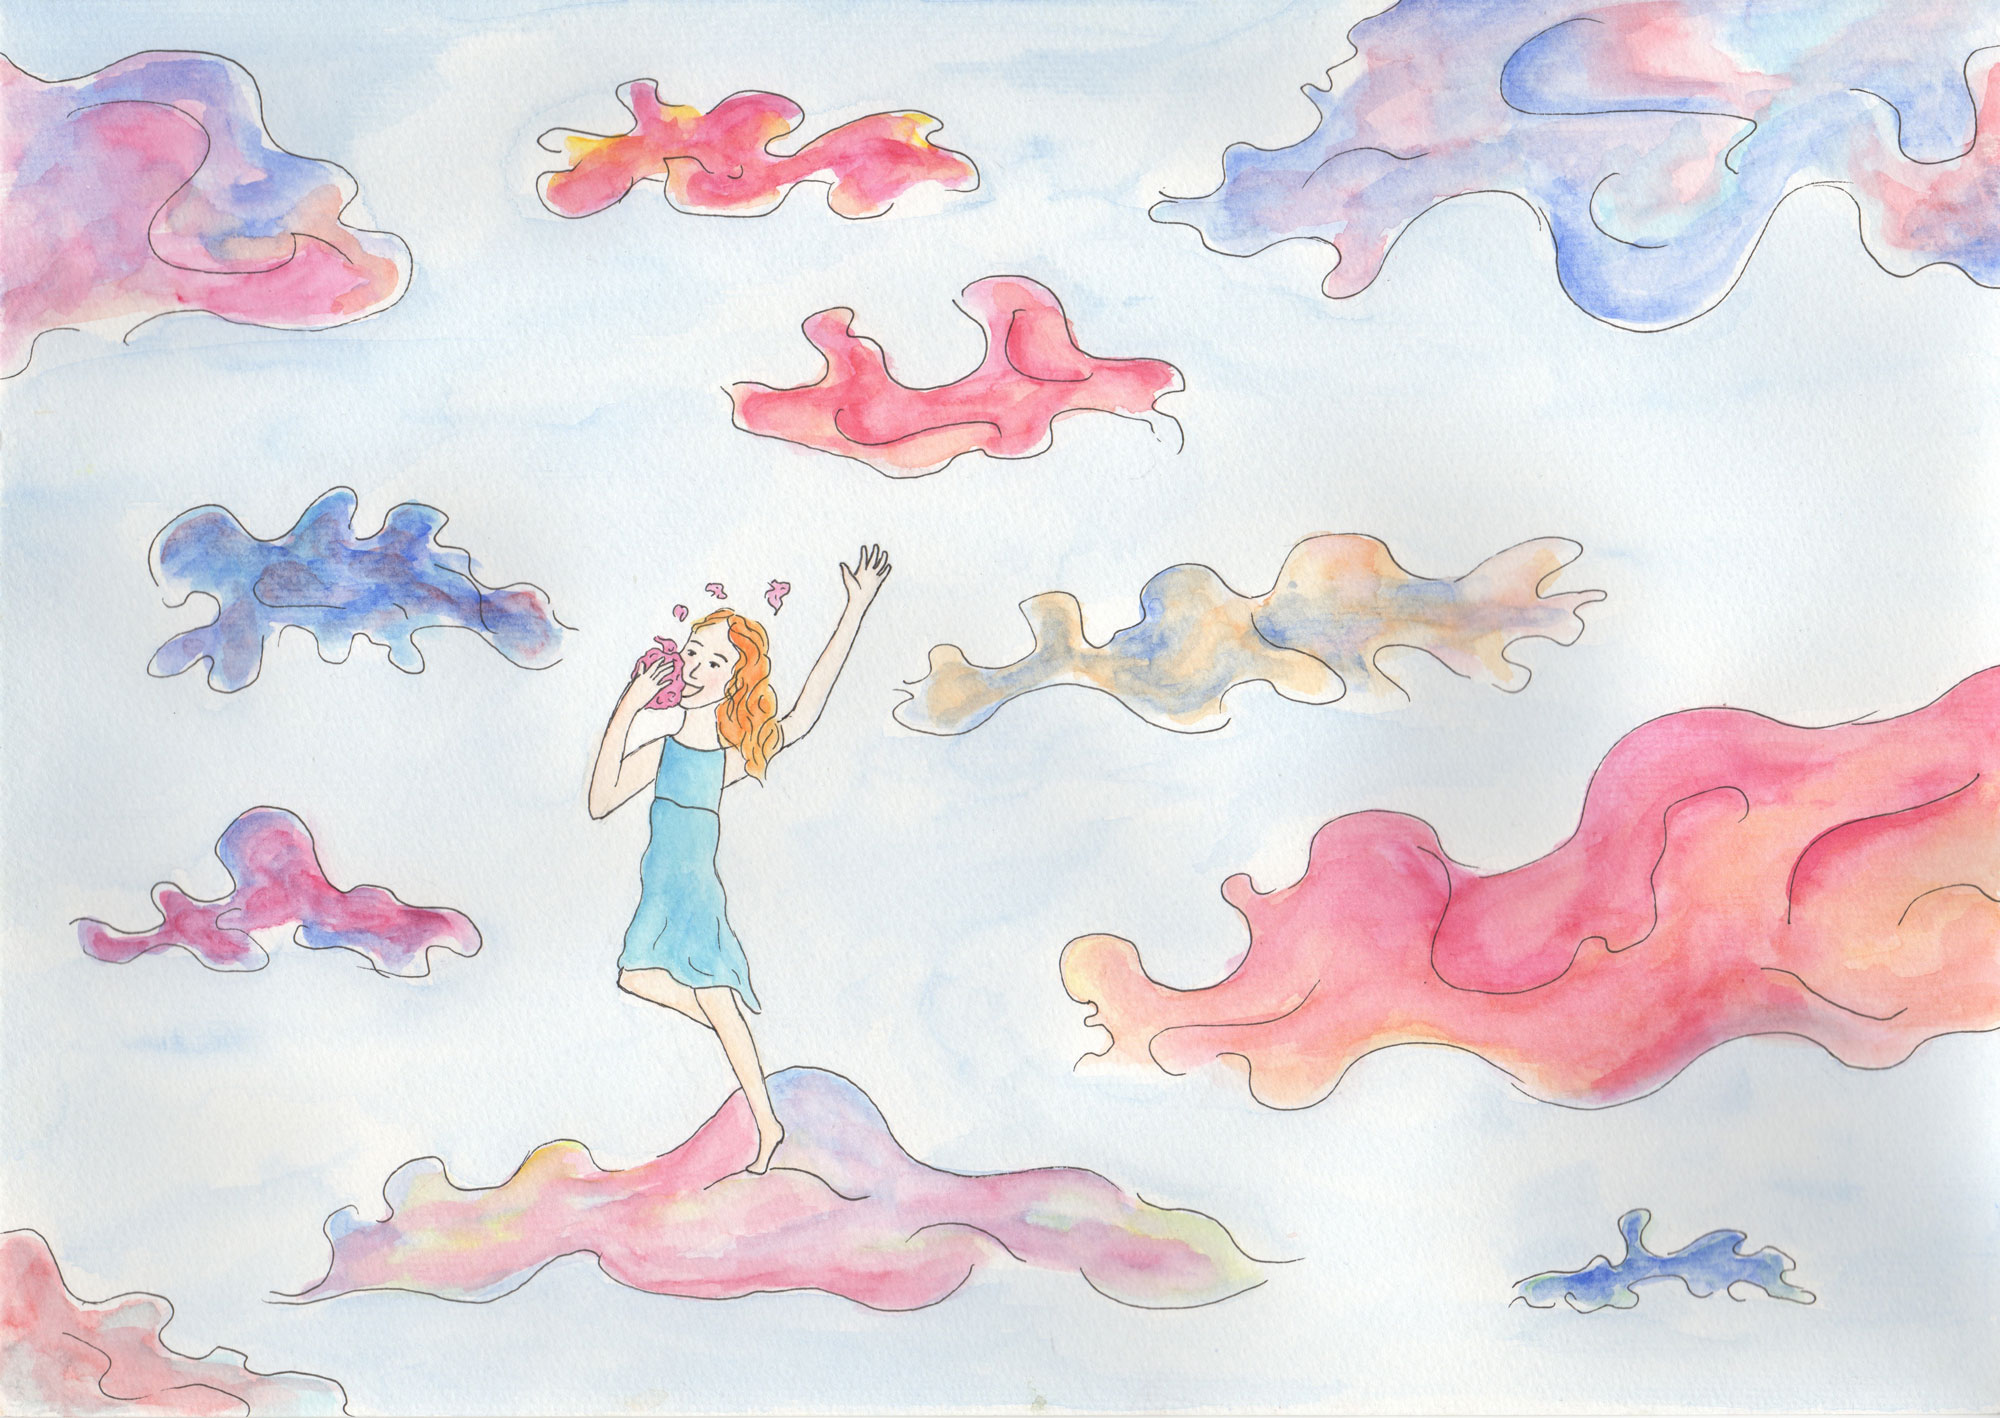 I wish I could dance on top of the clouds while eating fairy floss.